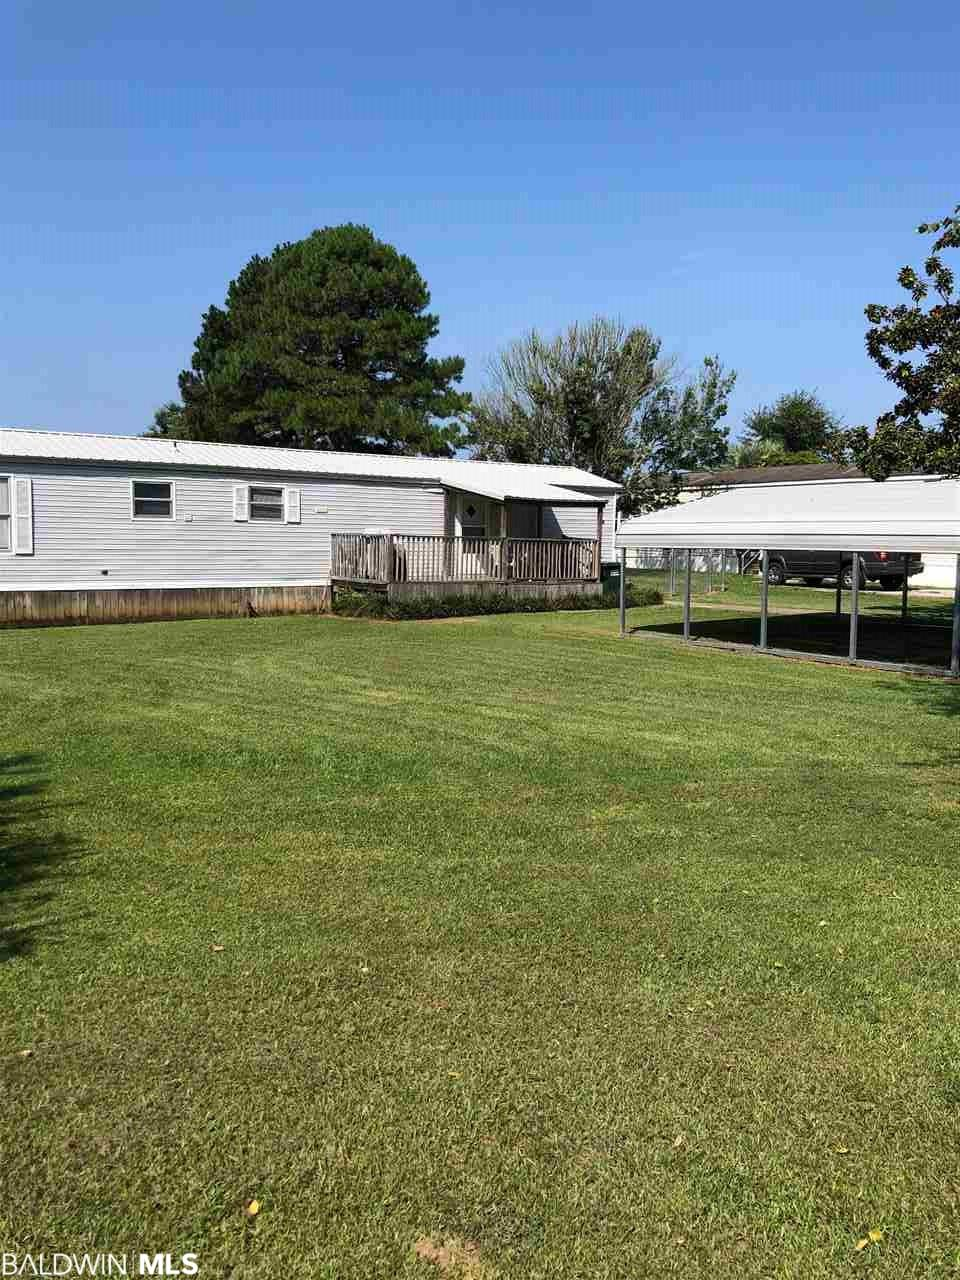 Move in ready in Fairhope! Walking distance to J. Larry Newton school! This 3 BR 2 BA mobile home is situated on a very large fenced lot at the end of the cul de sac. Fido or Fifi will love being able to run and run in their super huge back yard, and the kids will enjoy having plenty of room to play outside as well! Mom and dad can enjoy morning coffee on either the front or back porch, and dad will love the 10 x 12 shed that conveys with the property! Call me, or your favorite agent for an appointment to view this listing! Don't miss this wonderful opportunity to own your own home in Fairhope for $70,000!